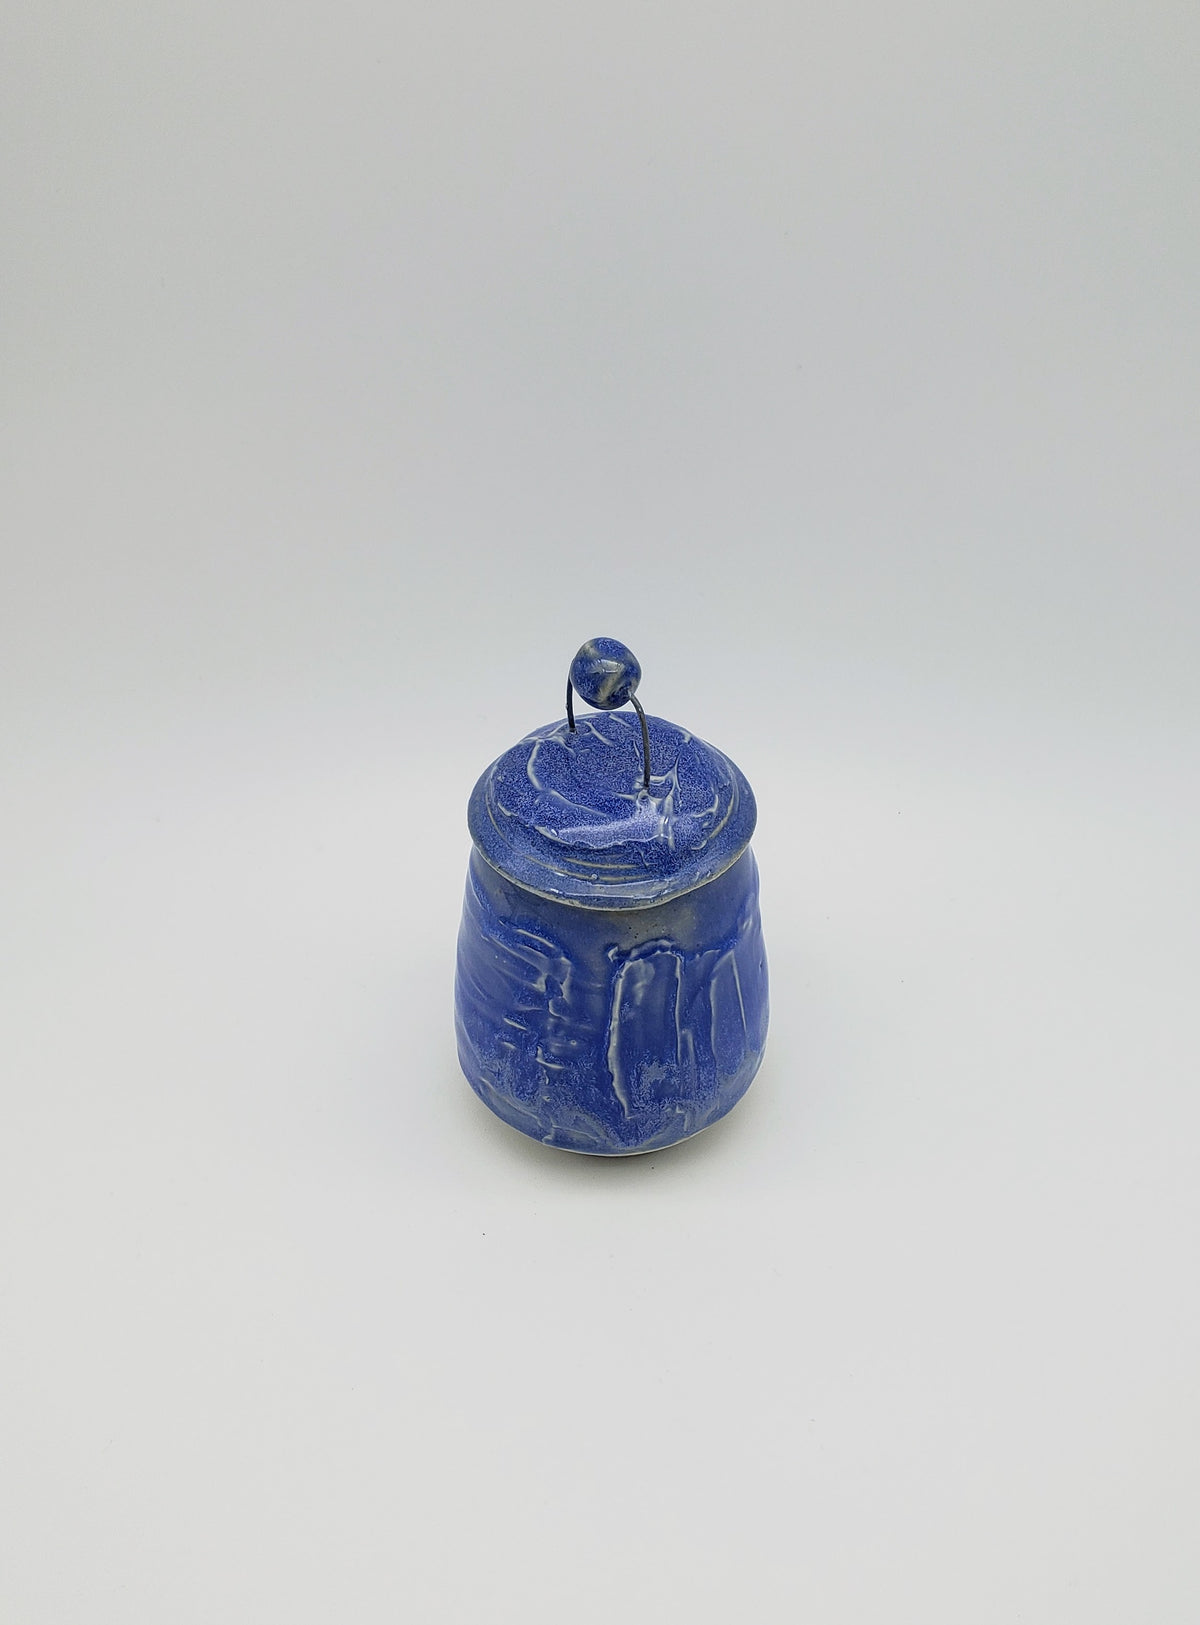 Slipped Floating Blue Jar